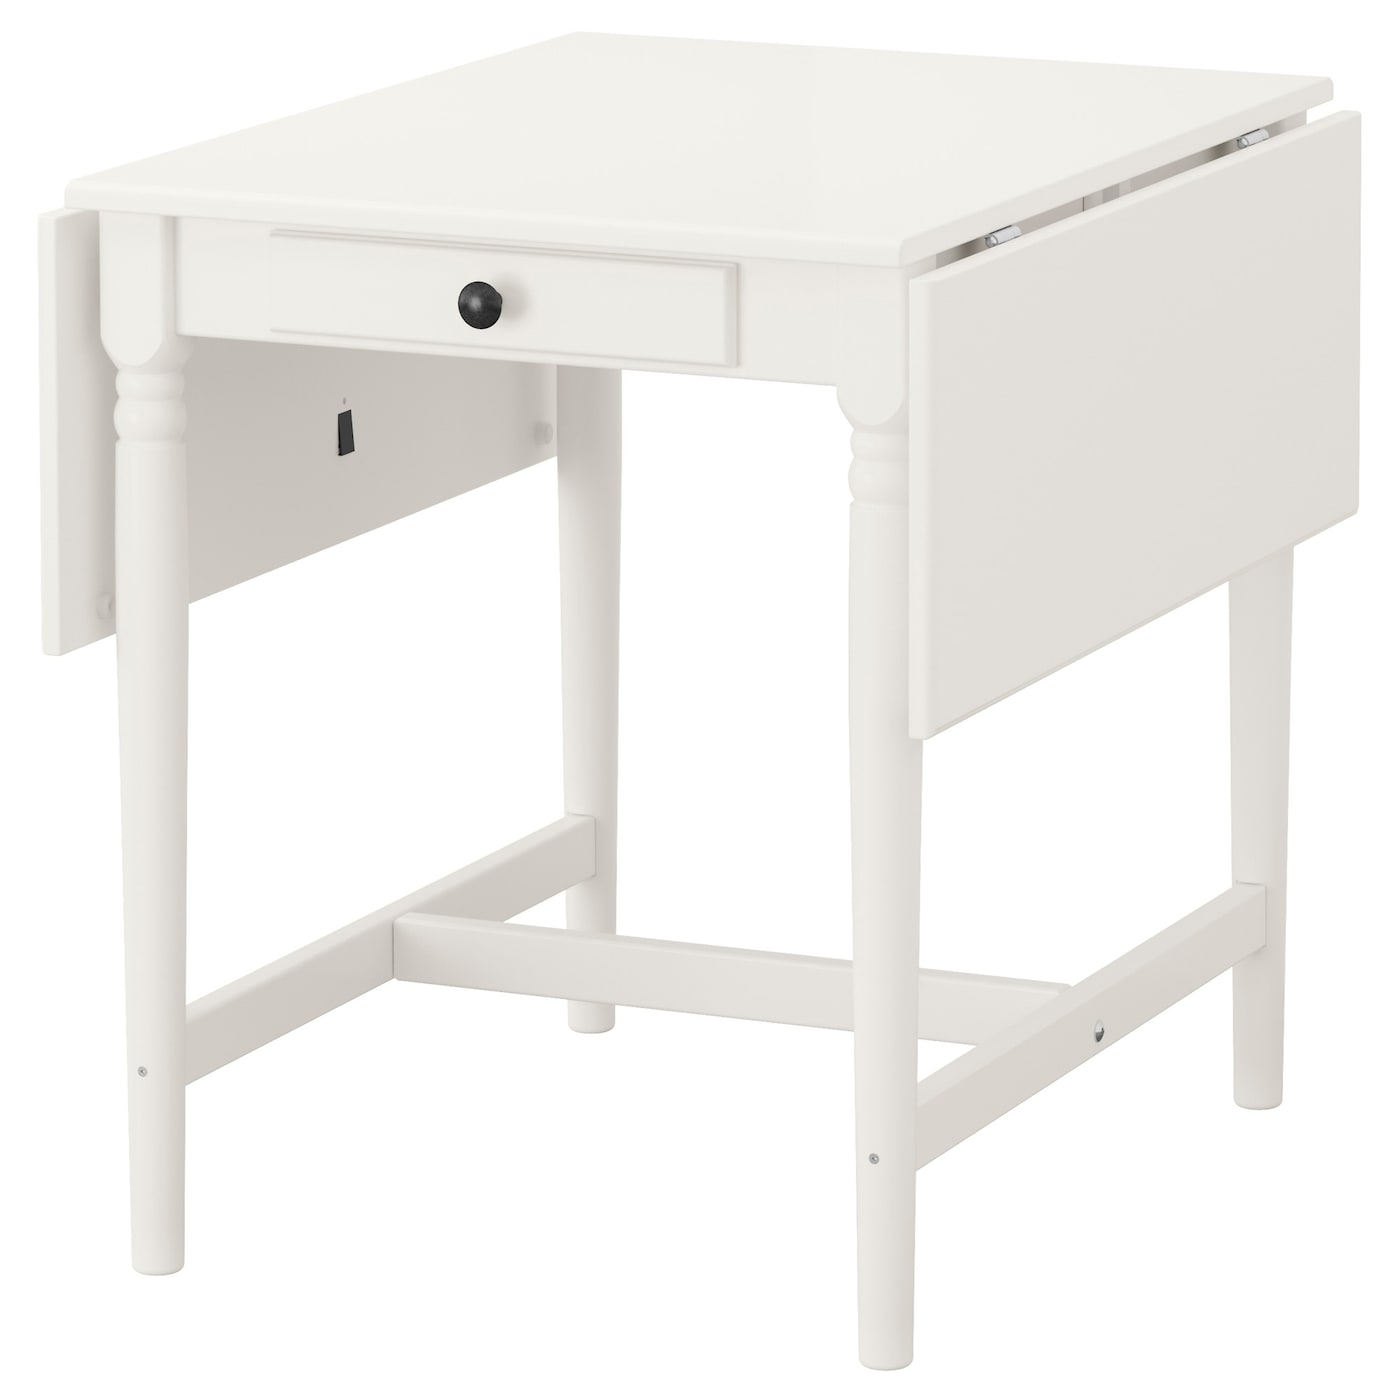 Ikea dining tables ikea ireland dublin - Table cuisine pliante ikea ...